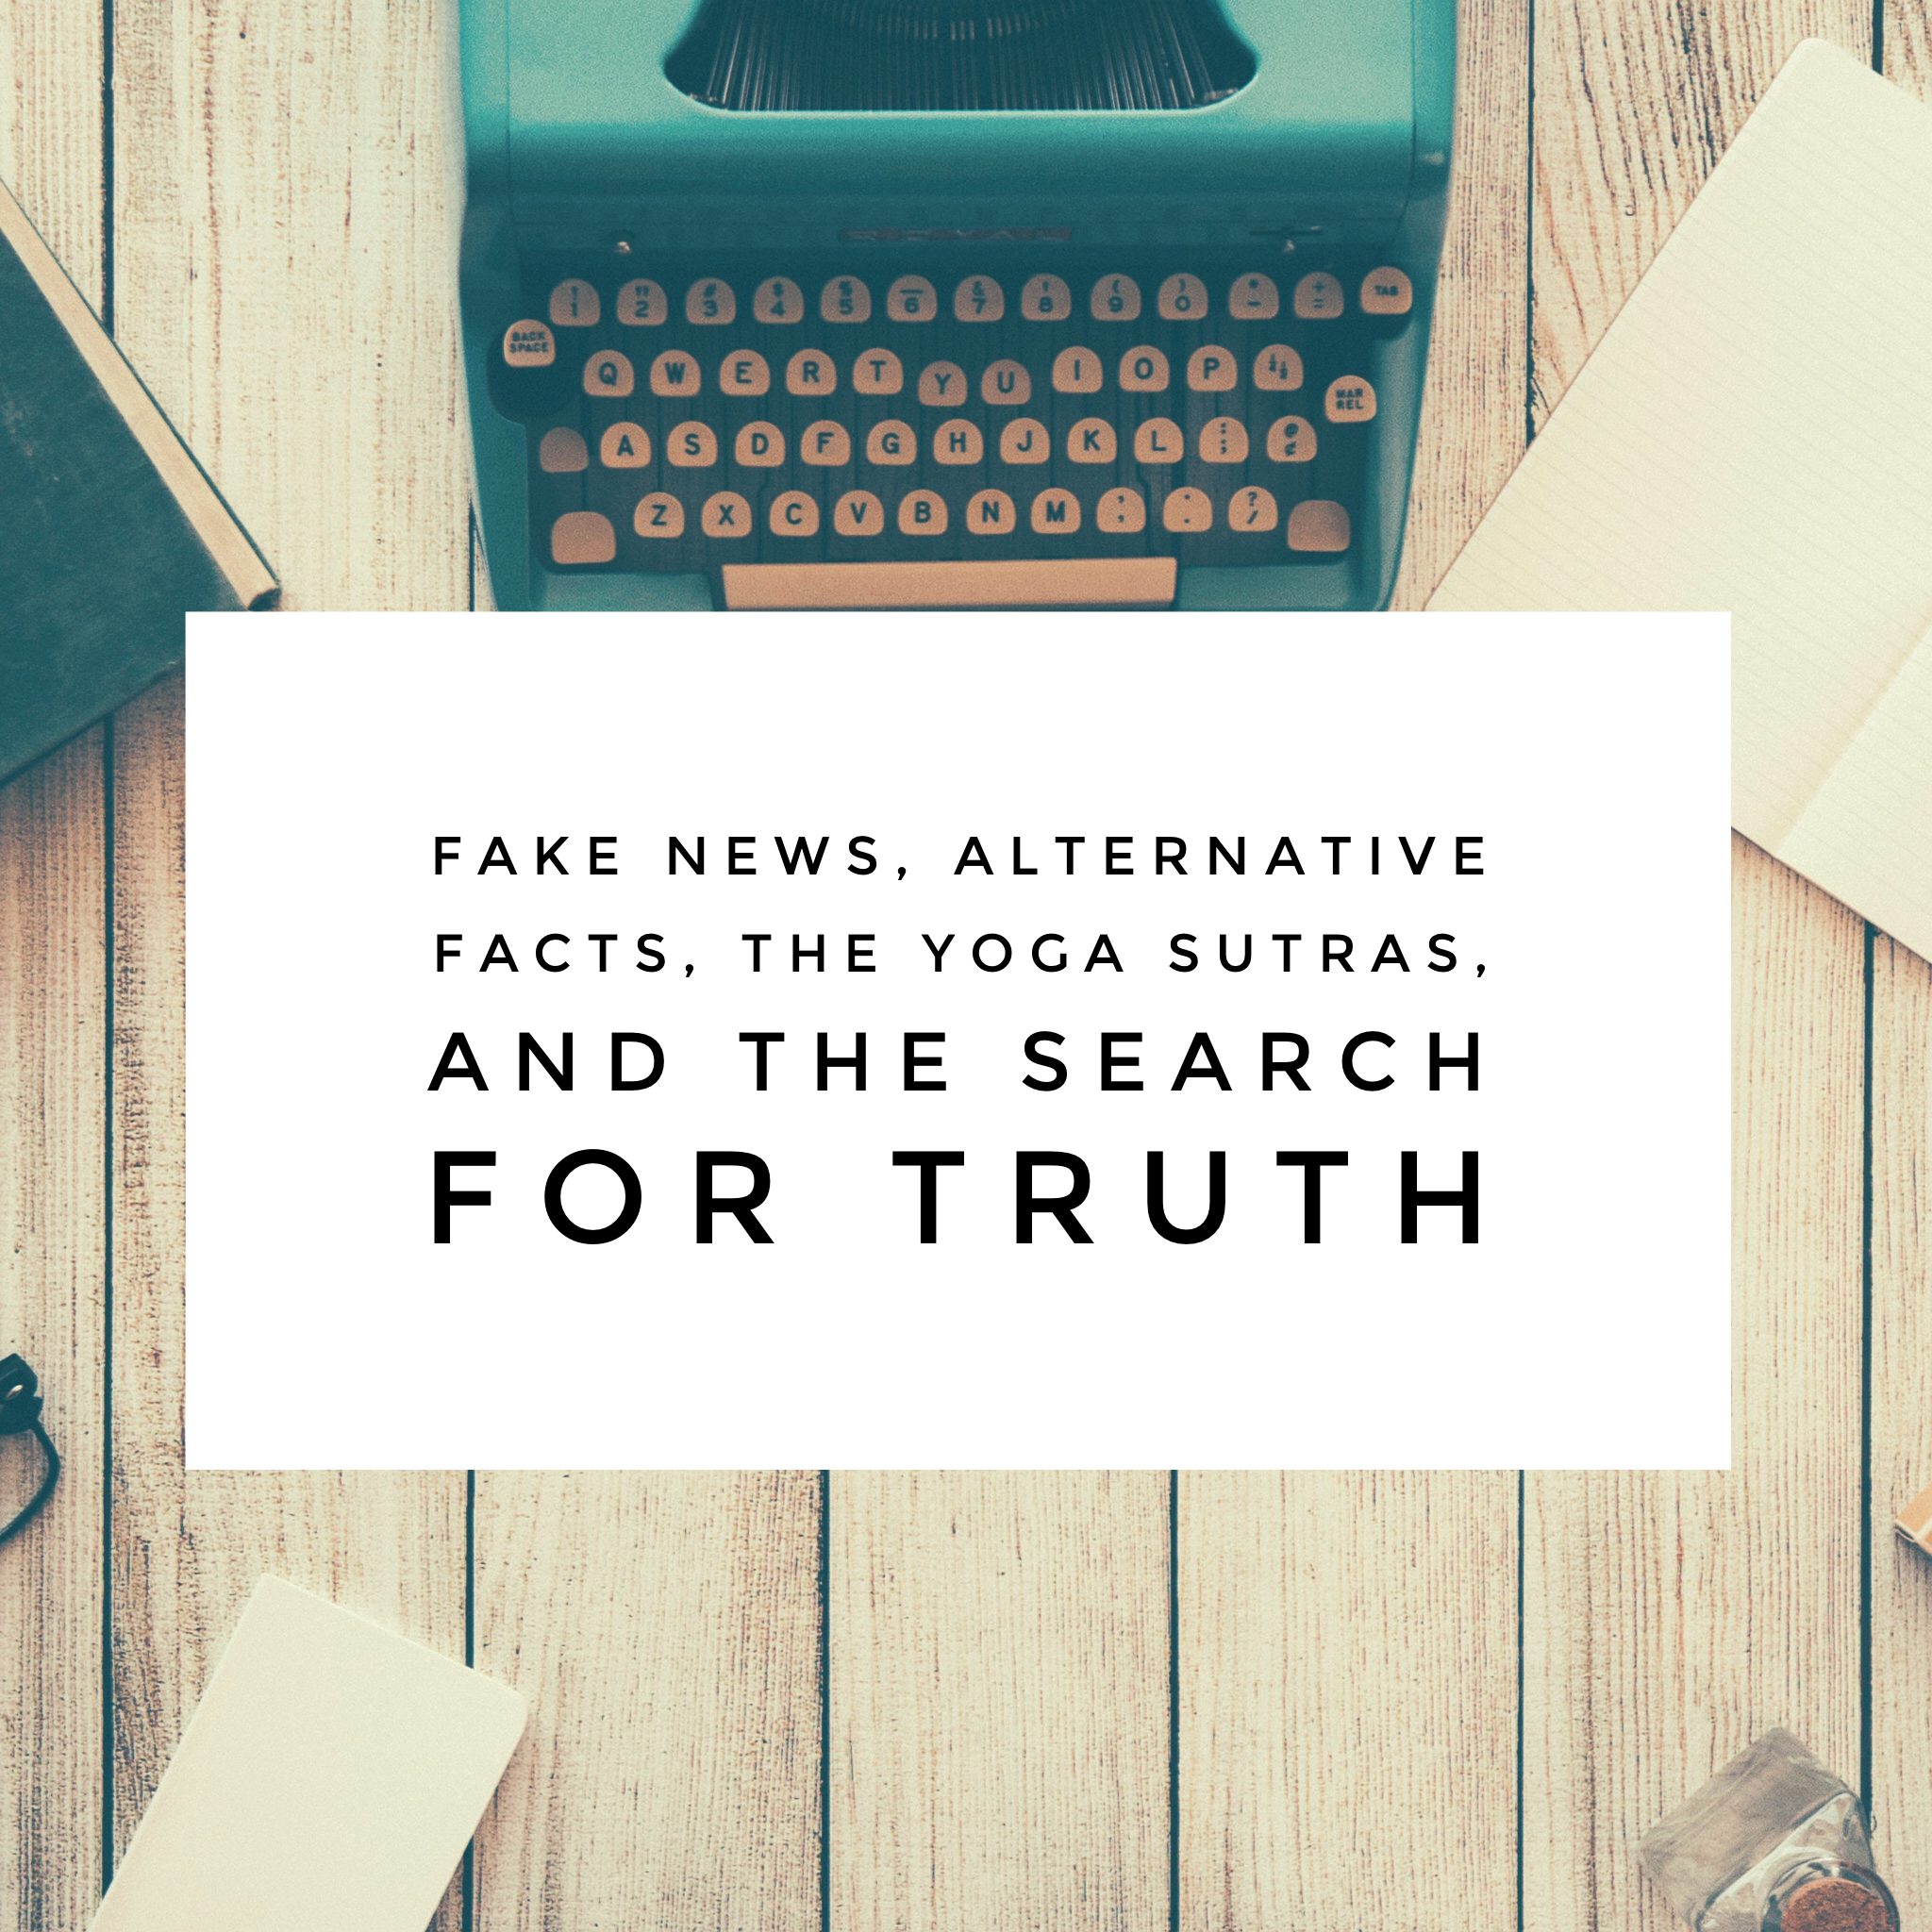 yoga sutras and truth